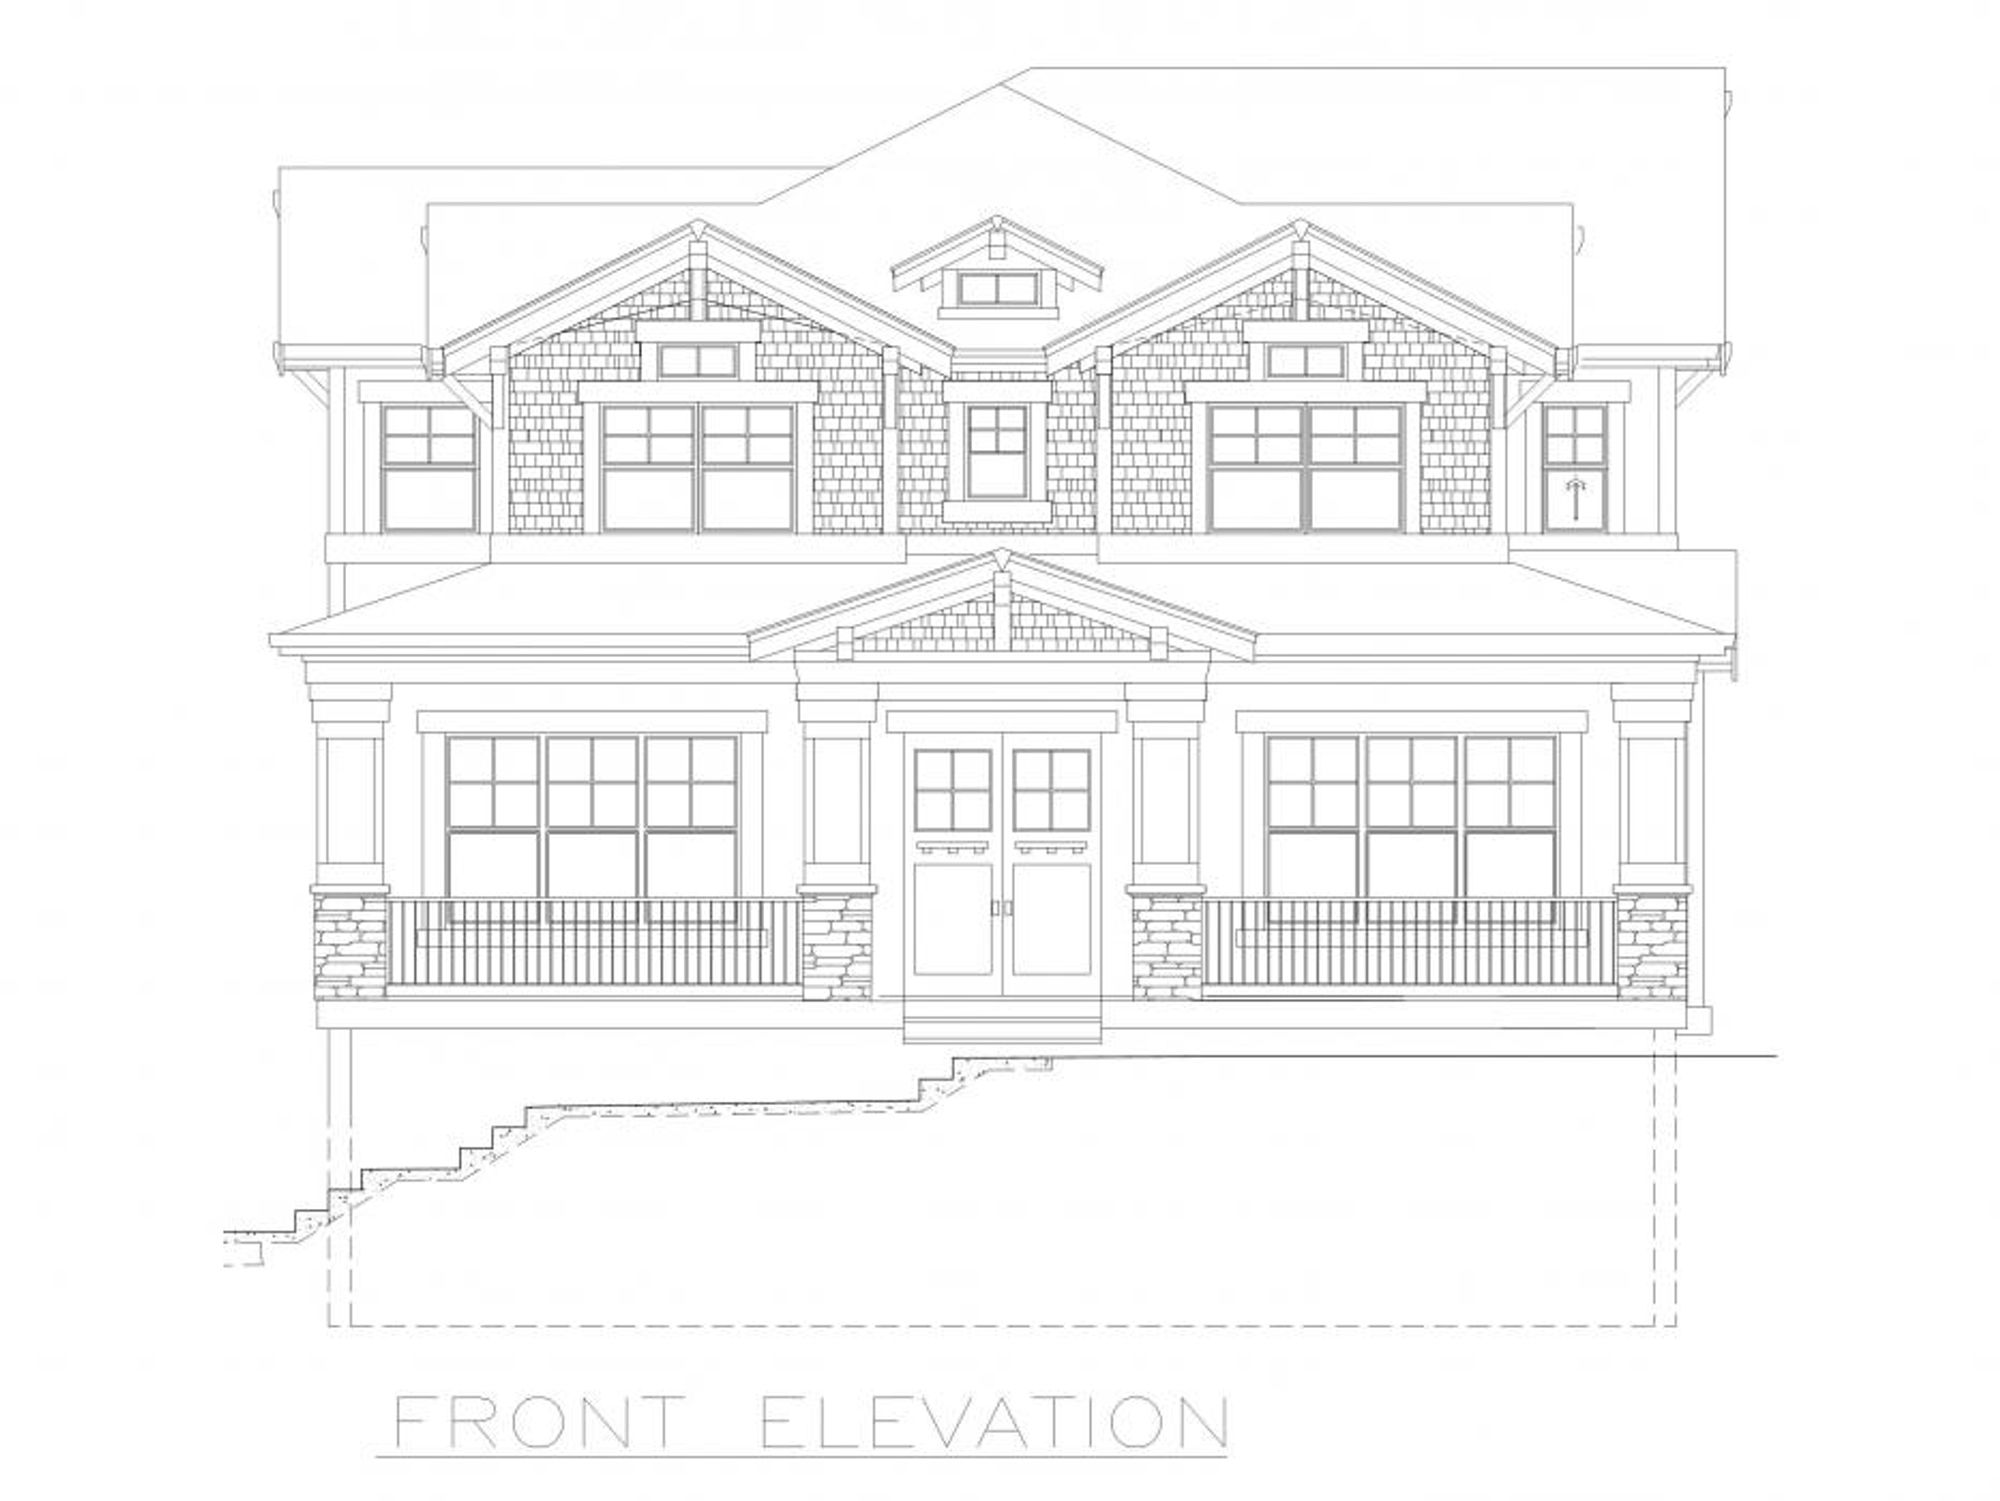 The Florence Front Elevation